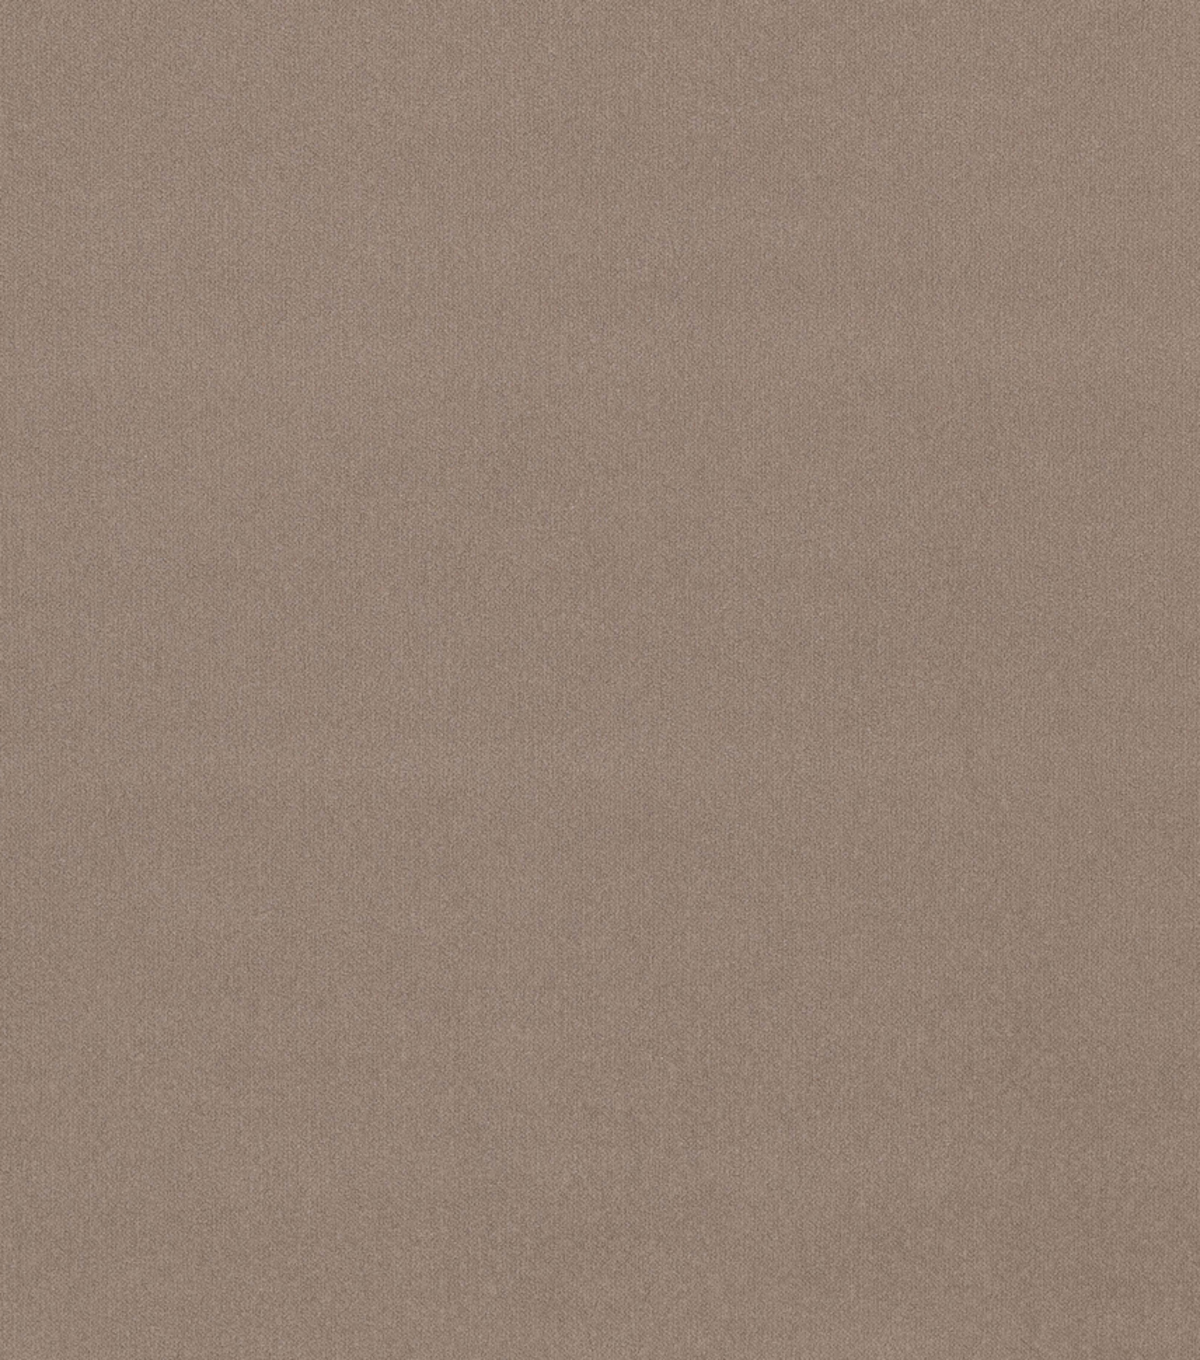 Home Decor 8\u0022x8\u0022 Fabric Swatch-Sedona Taupe